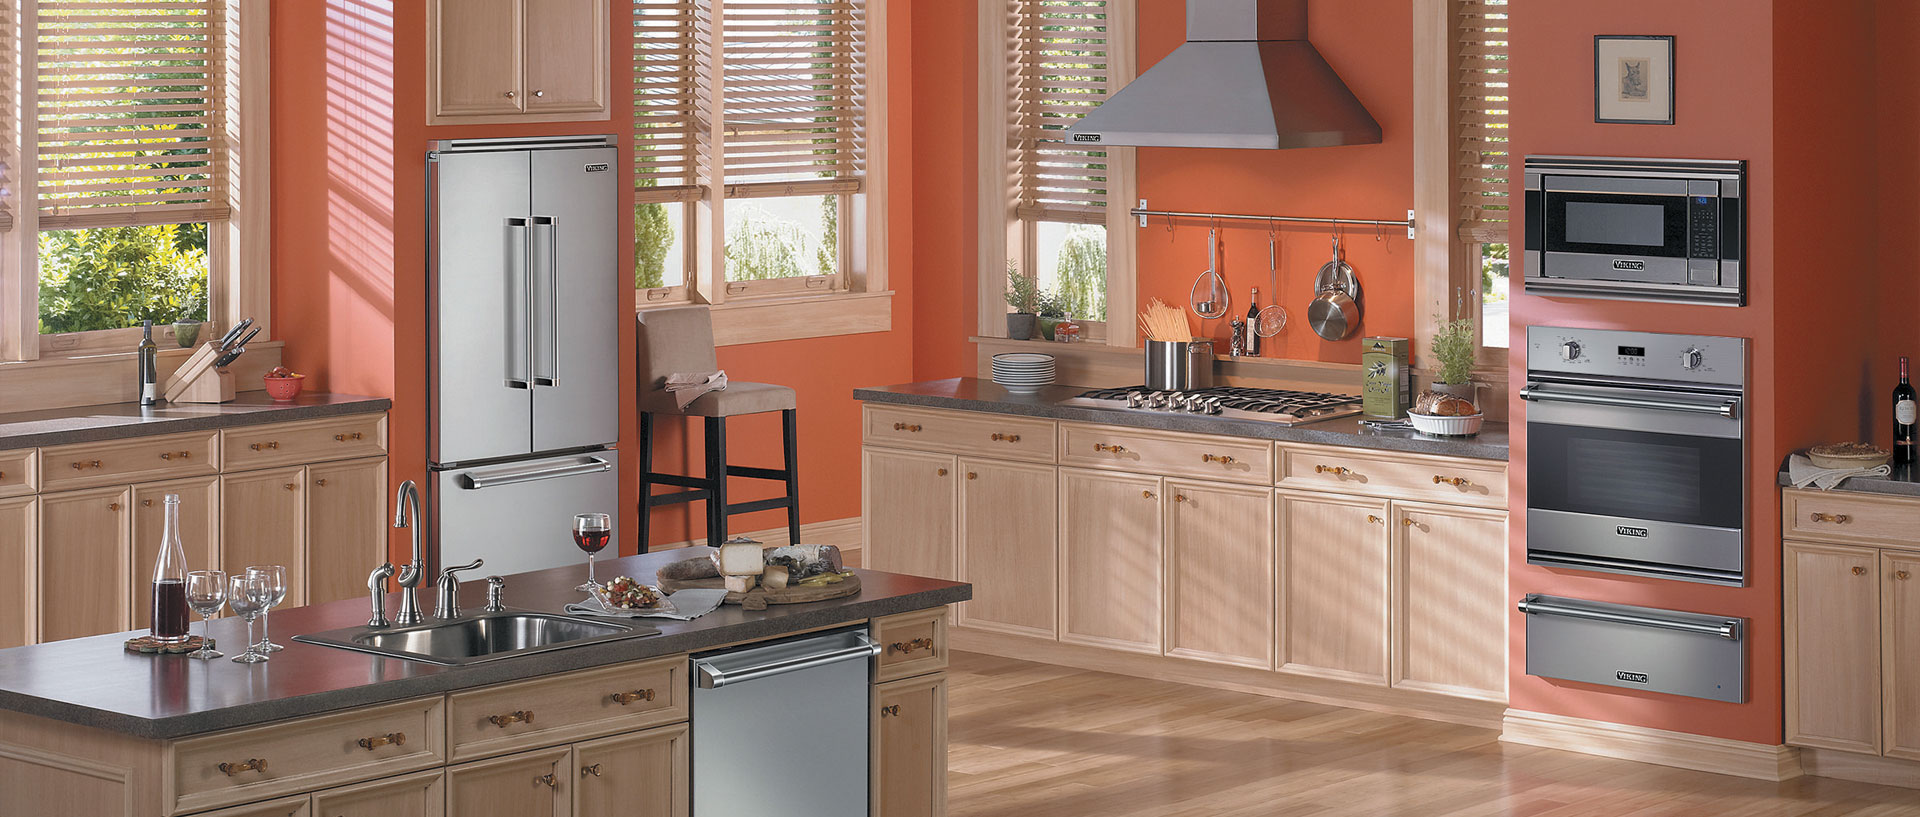 A Viking Kitchen is the heart of any home. Viking Appliances, like the ones in this sunset orange kitchen, can be counted on to deliver unparalleled performance for years.